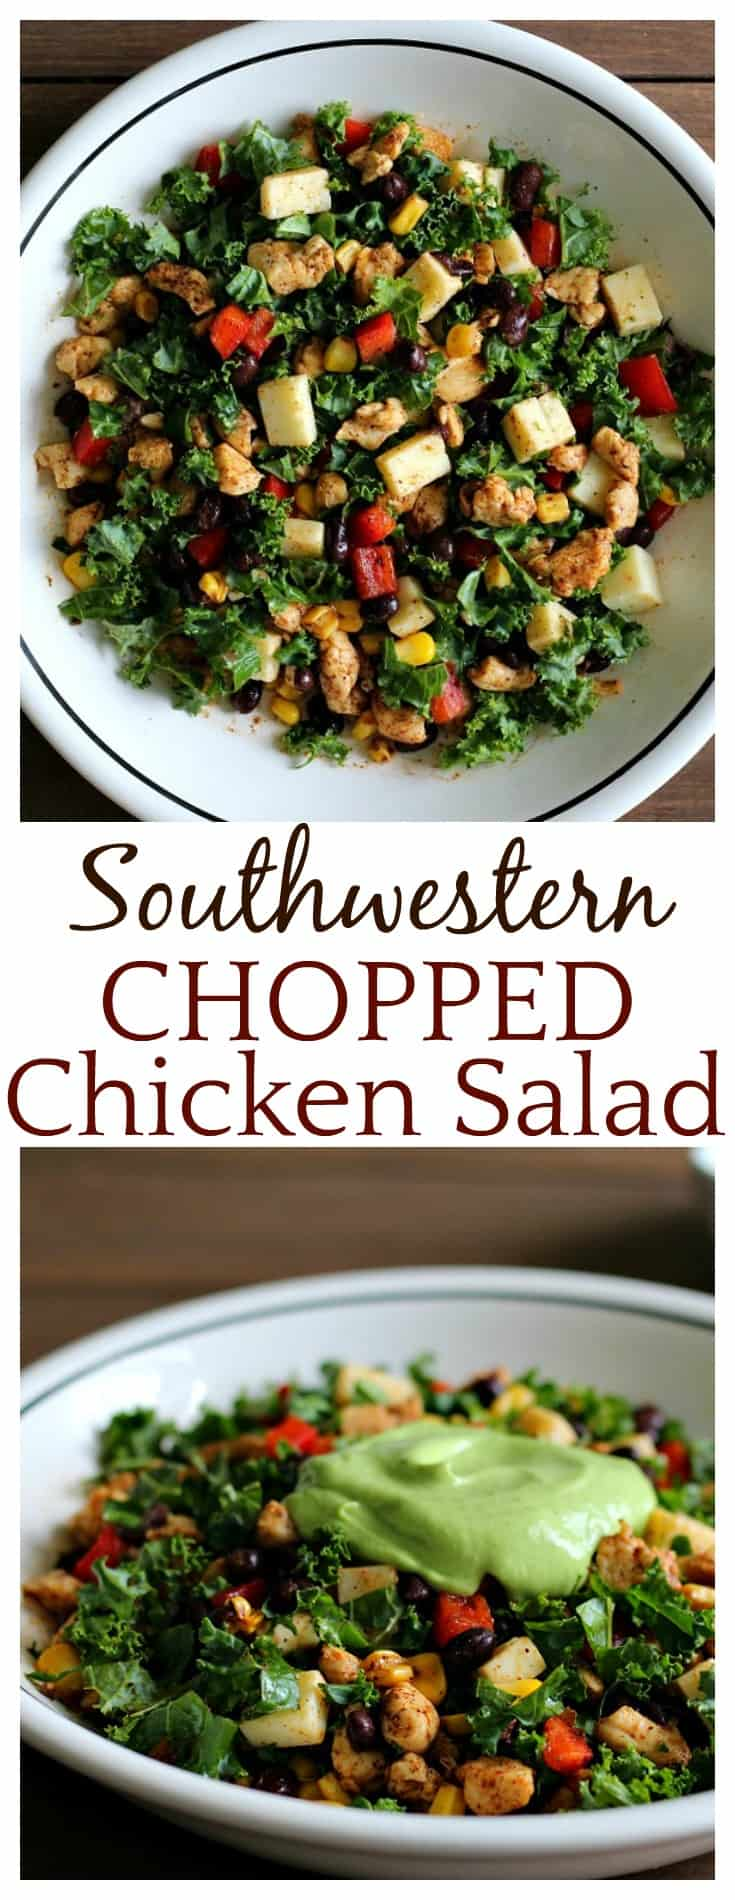 This Southwestern Chopped Chicken Salad is full of healthy ingredients! Kale,vegetables, cheese, and chicken are chopped and combined, then topped with an incredibly delicious Cilantro Lime Avocado Puree! This is an easy recipe that's perfect for a hearty lunch or dinner!